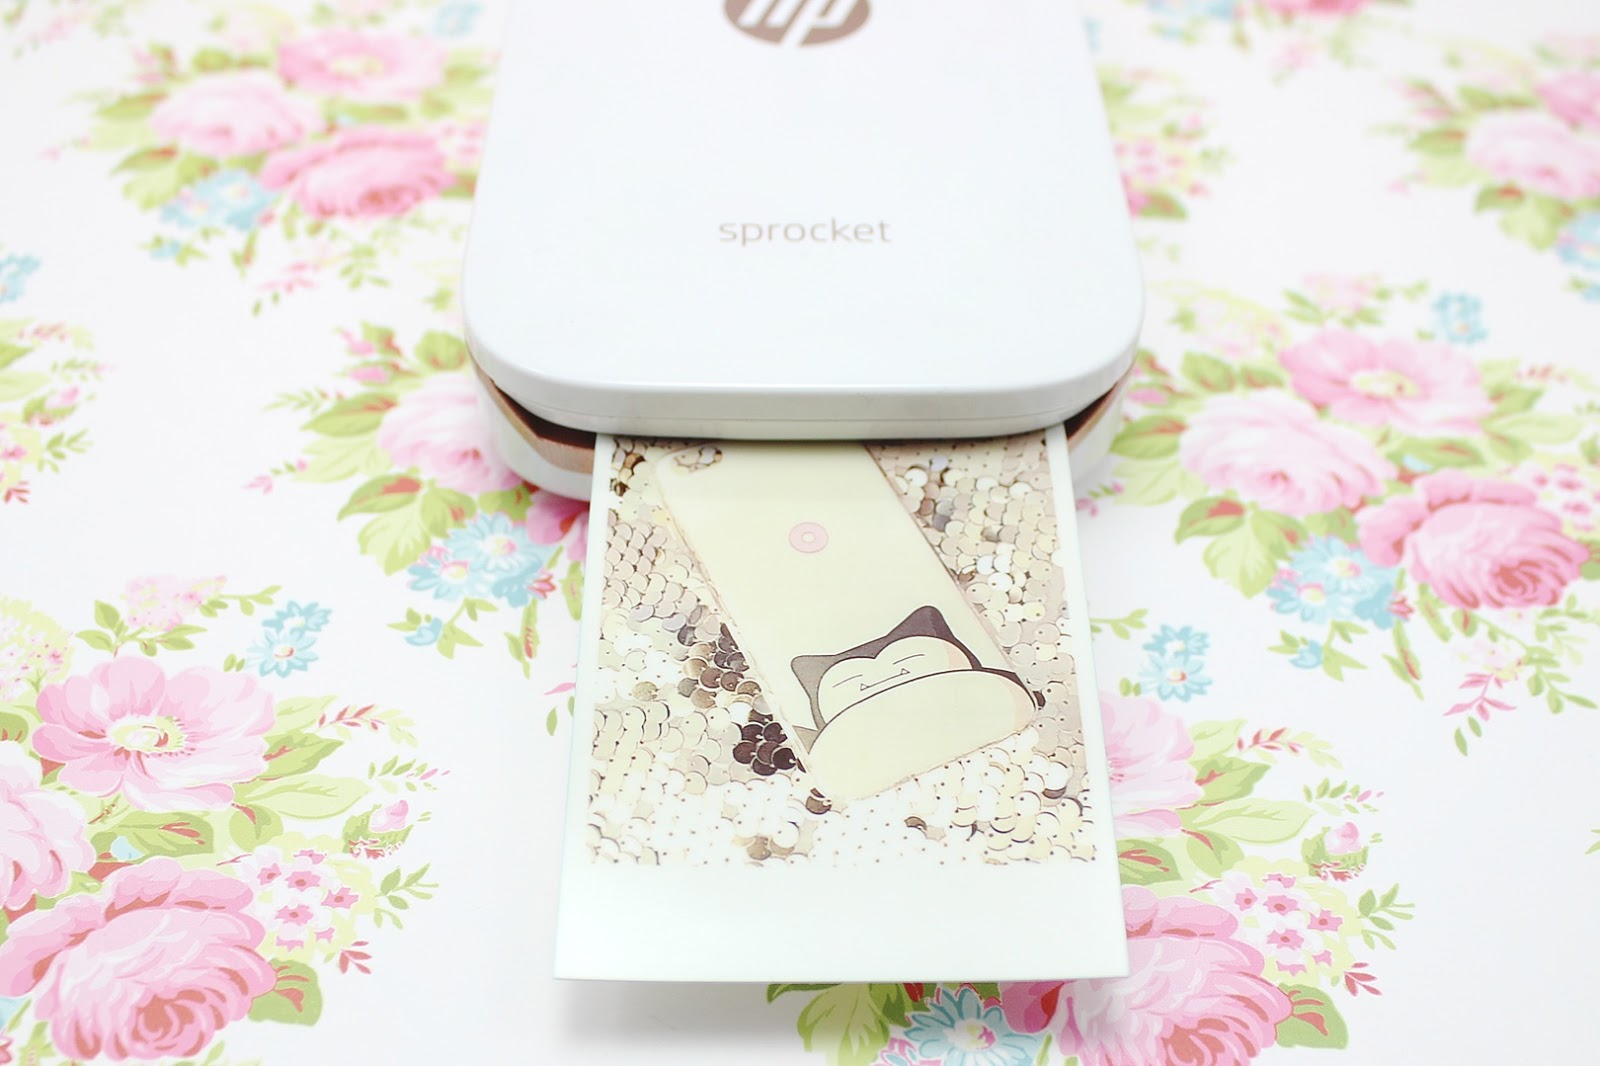 hp sprocket printer review